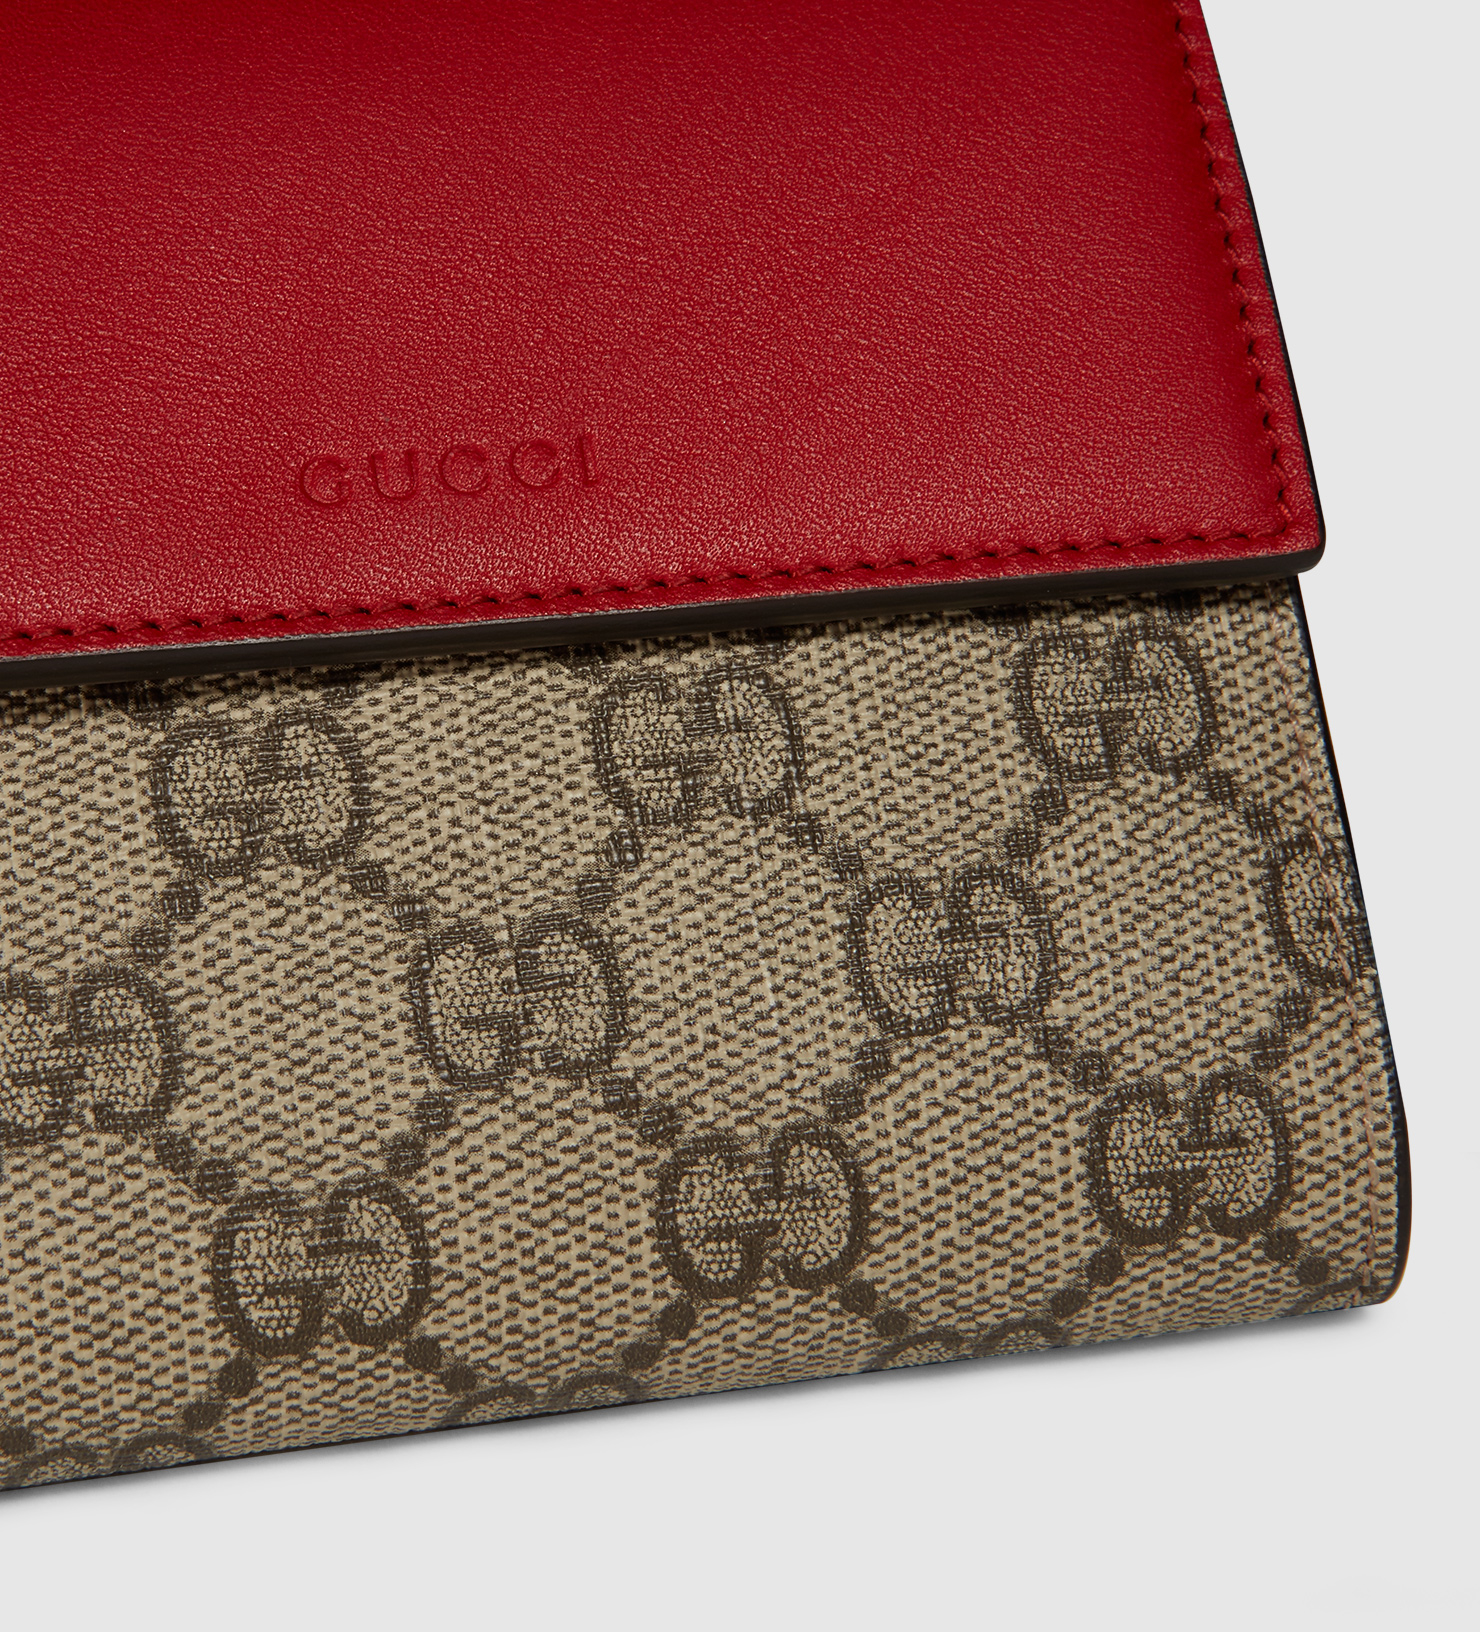 ff9b328ad91b Personalised Gucci Wallets | Stanford Center for Opportunity Policy ...